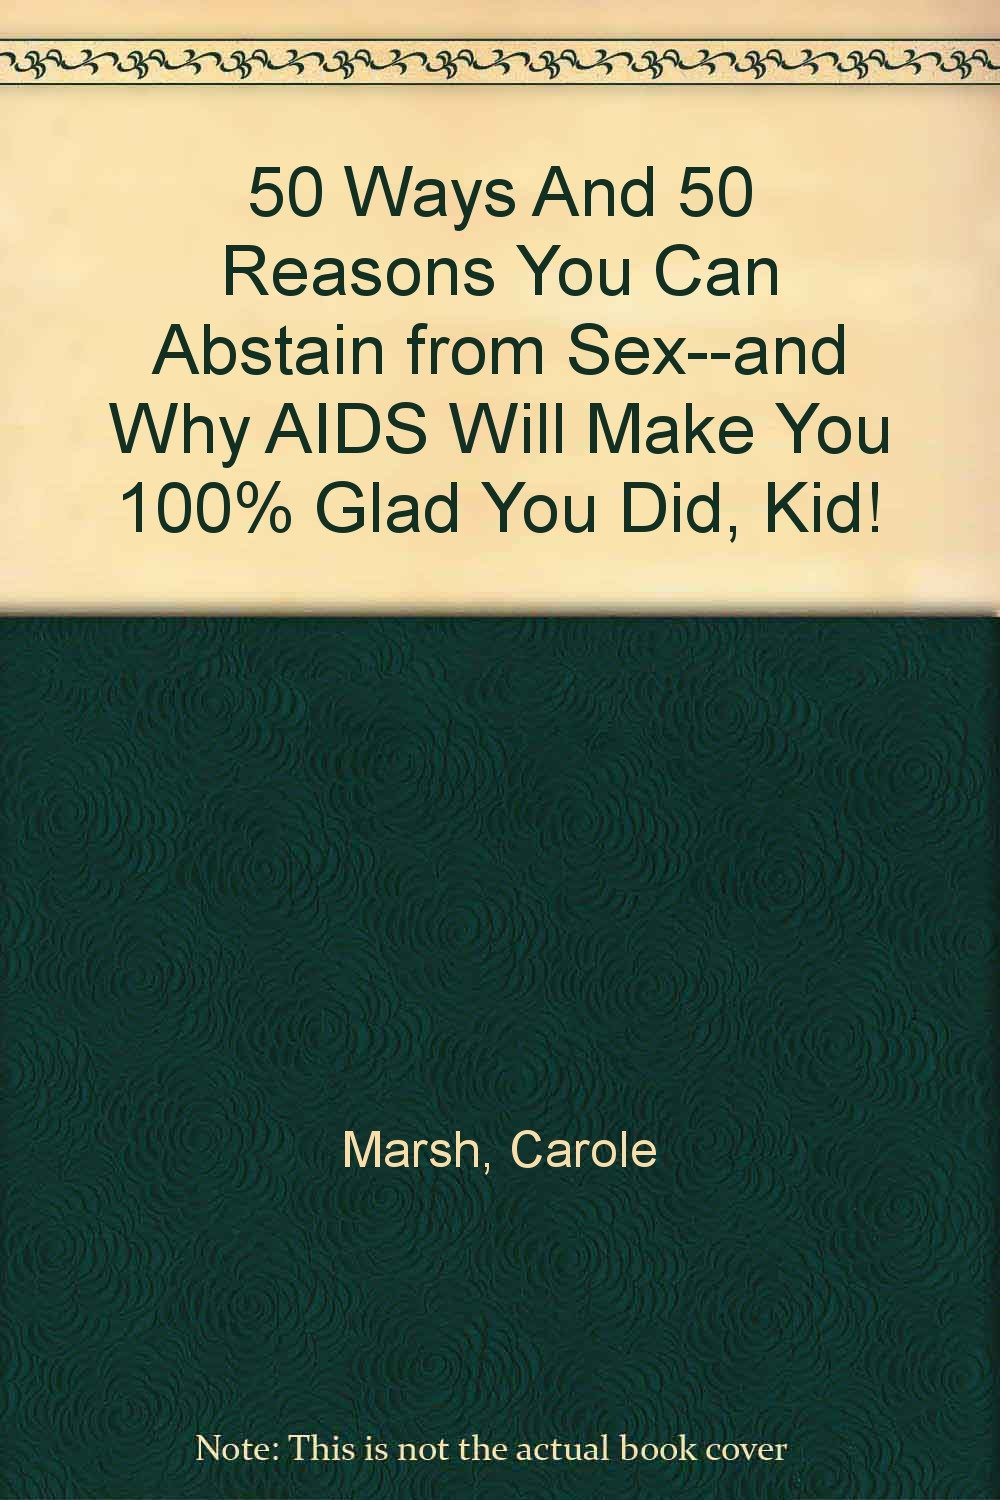 Reasons to abstain from sex